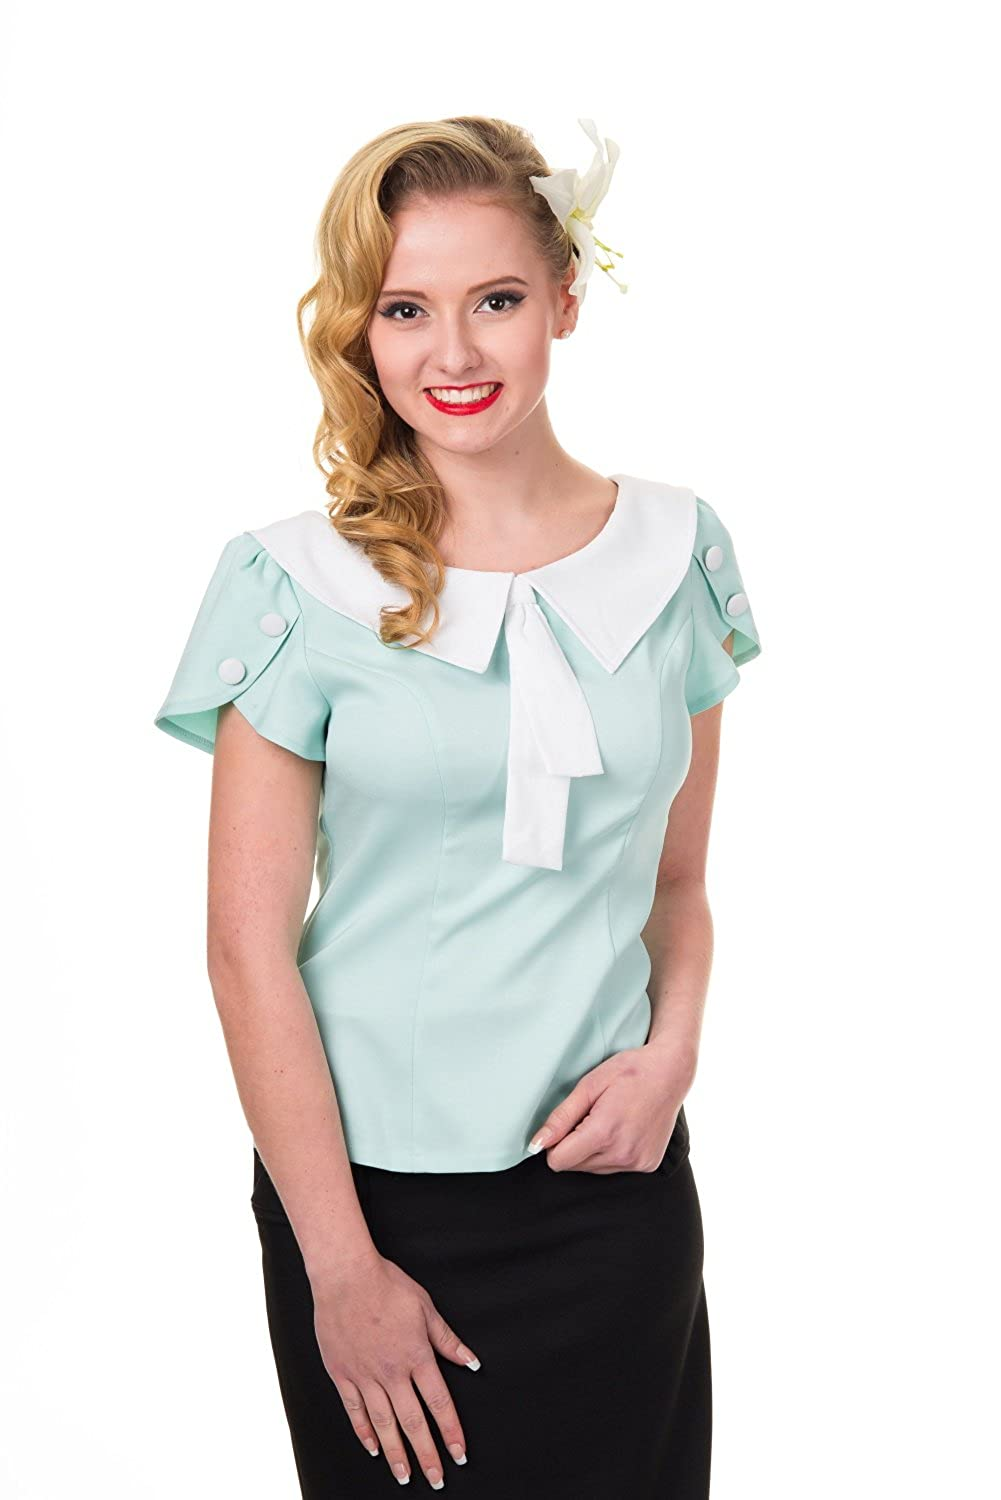 Shop 1960s Style Blouses, Shirts and Tops Banned 60s Vintage Retro Two Tone Aqua Tie Neck Sweetheart Top Shirt $36.00 AT vintagedancer.com